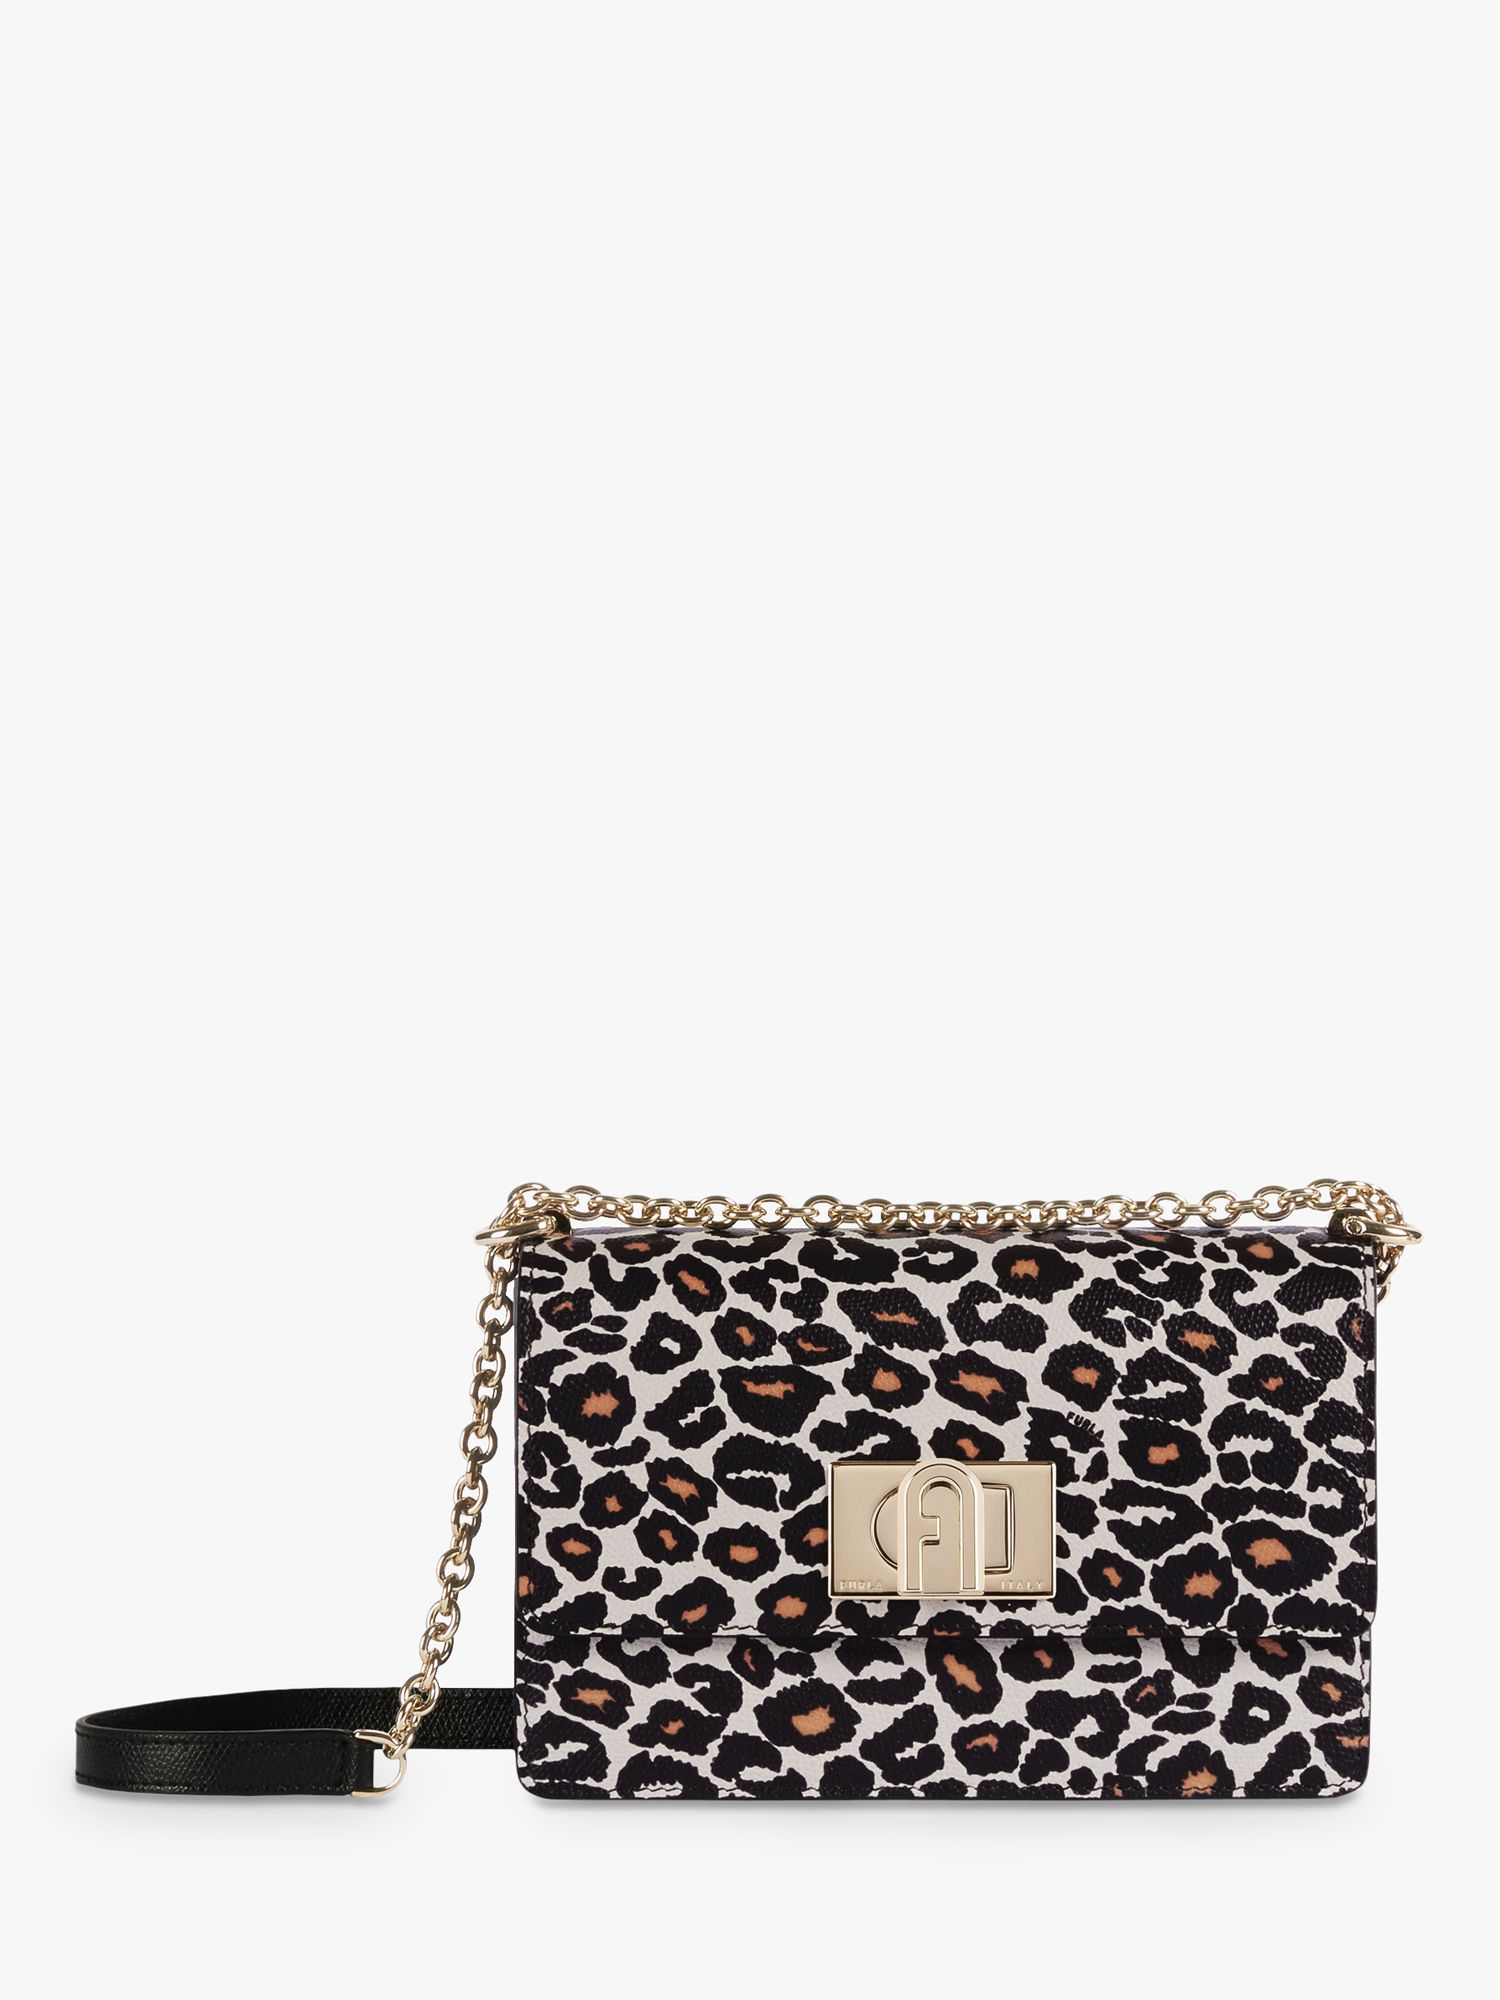 Furla Furla 1927 Small Leather Crossbody Bag, Leopard Black